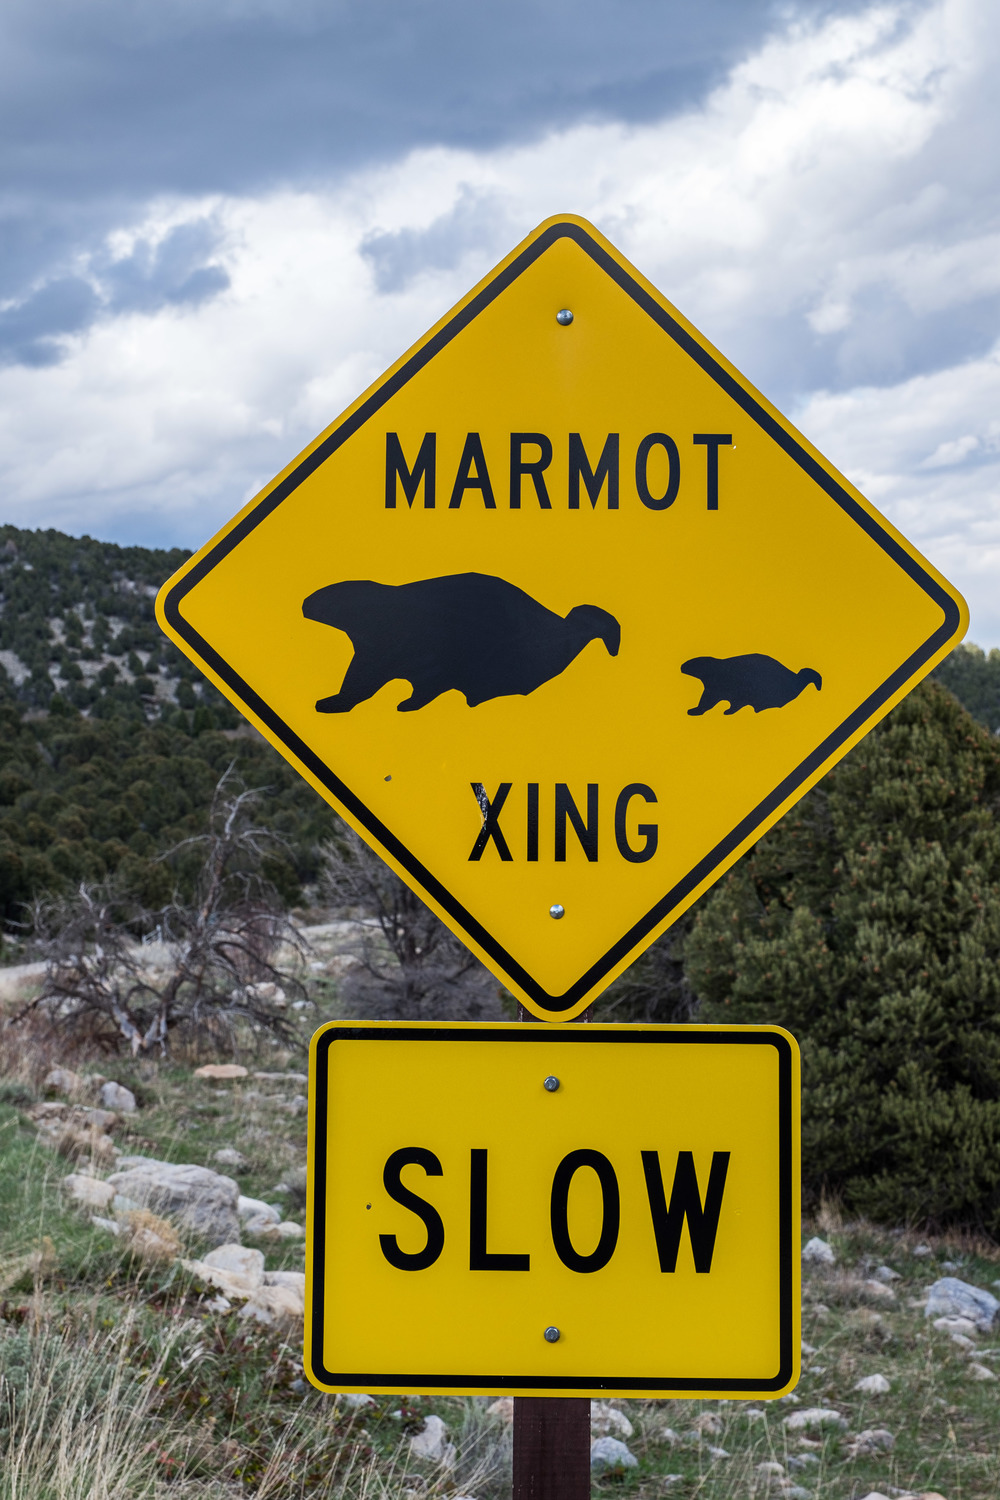 Marmot X-ing in Great Basin National Park in Nevada.